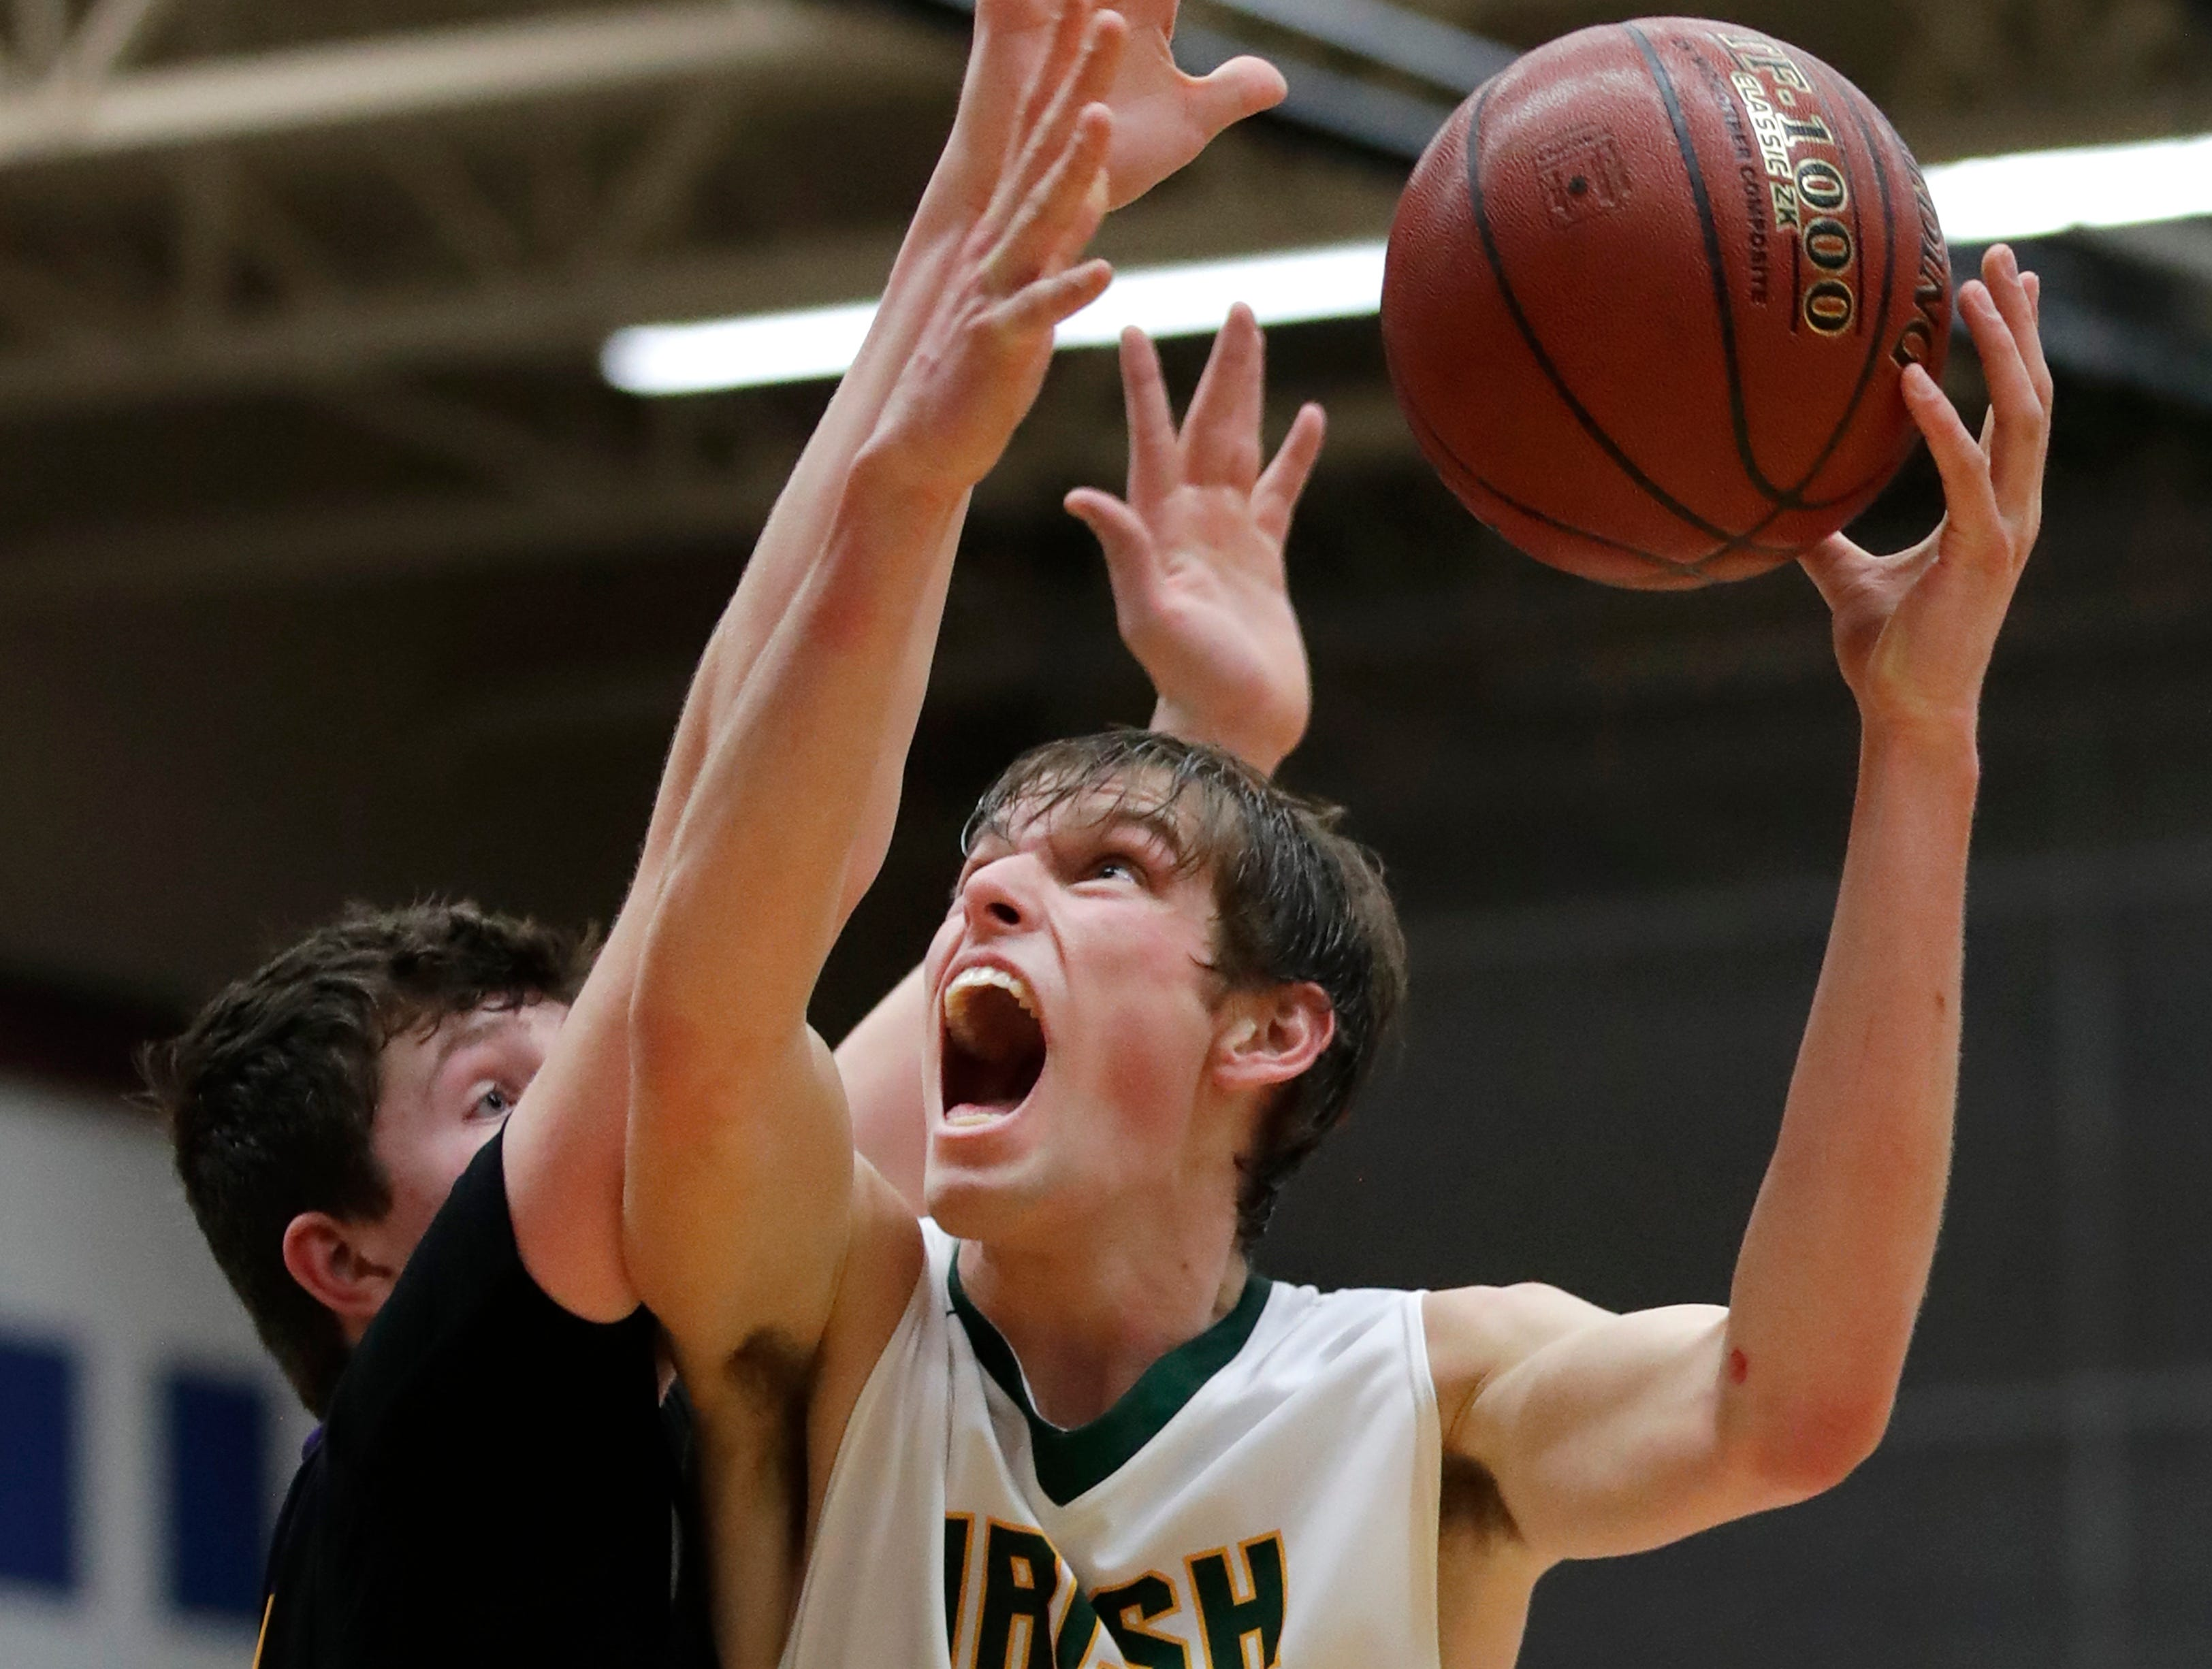 Freedom High SchoolÕs Luke Pingel pushes toward the basket against Denmark High School during the D3 sectional final Saturday, March 9, 2019, at Appleton North High School in Appleton, Wis.Danny Damiani/USA TODAY NETWORK-Wisconsin